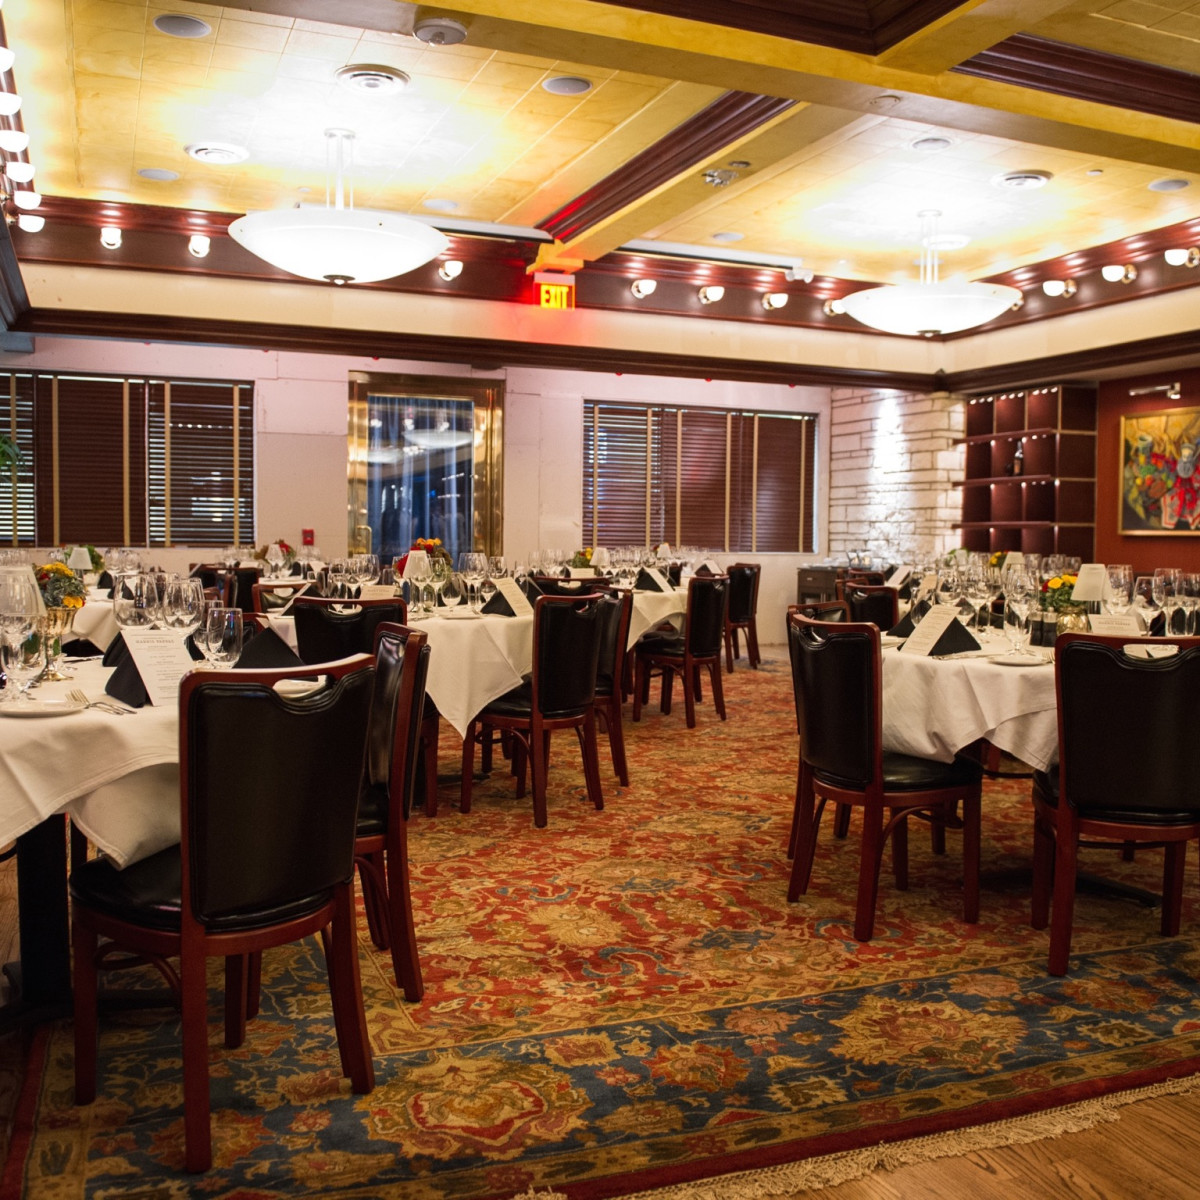 Pappas Bros Steakhouse downtown interior